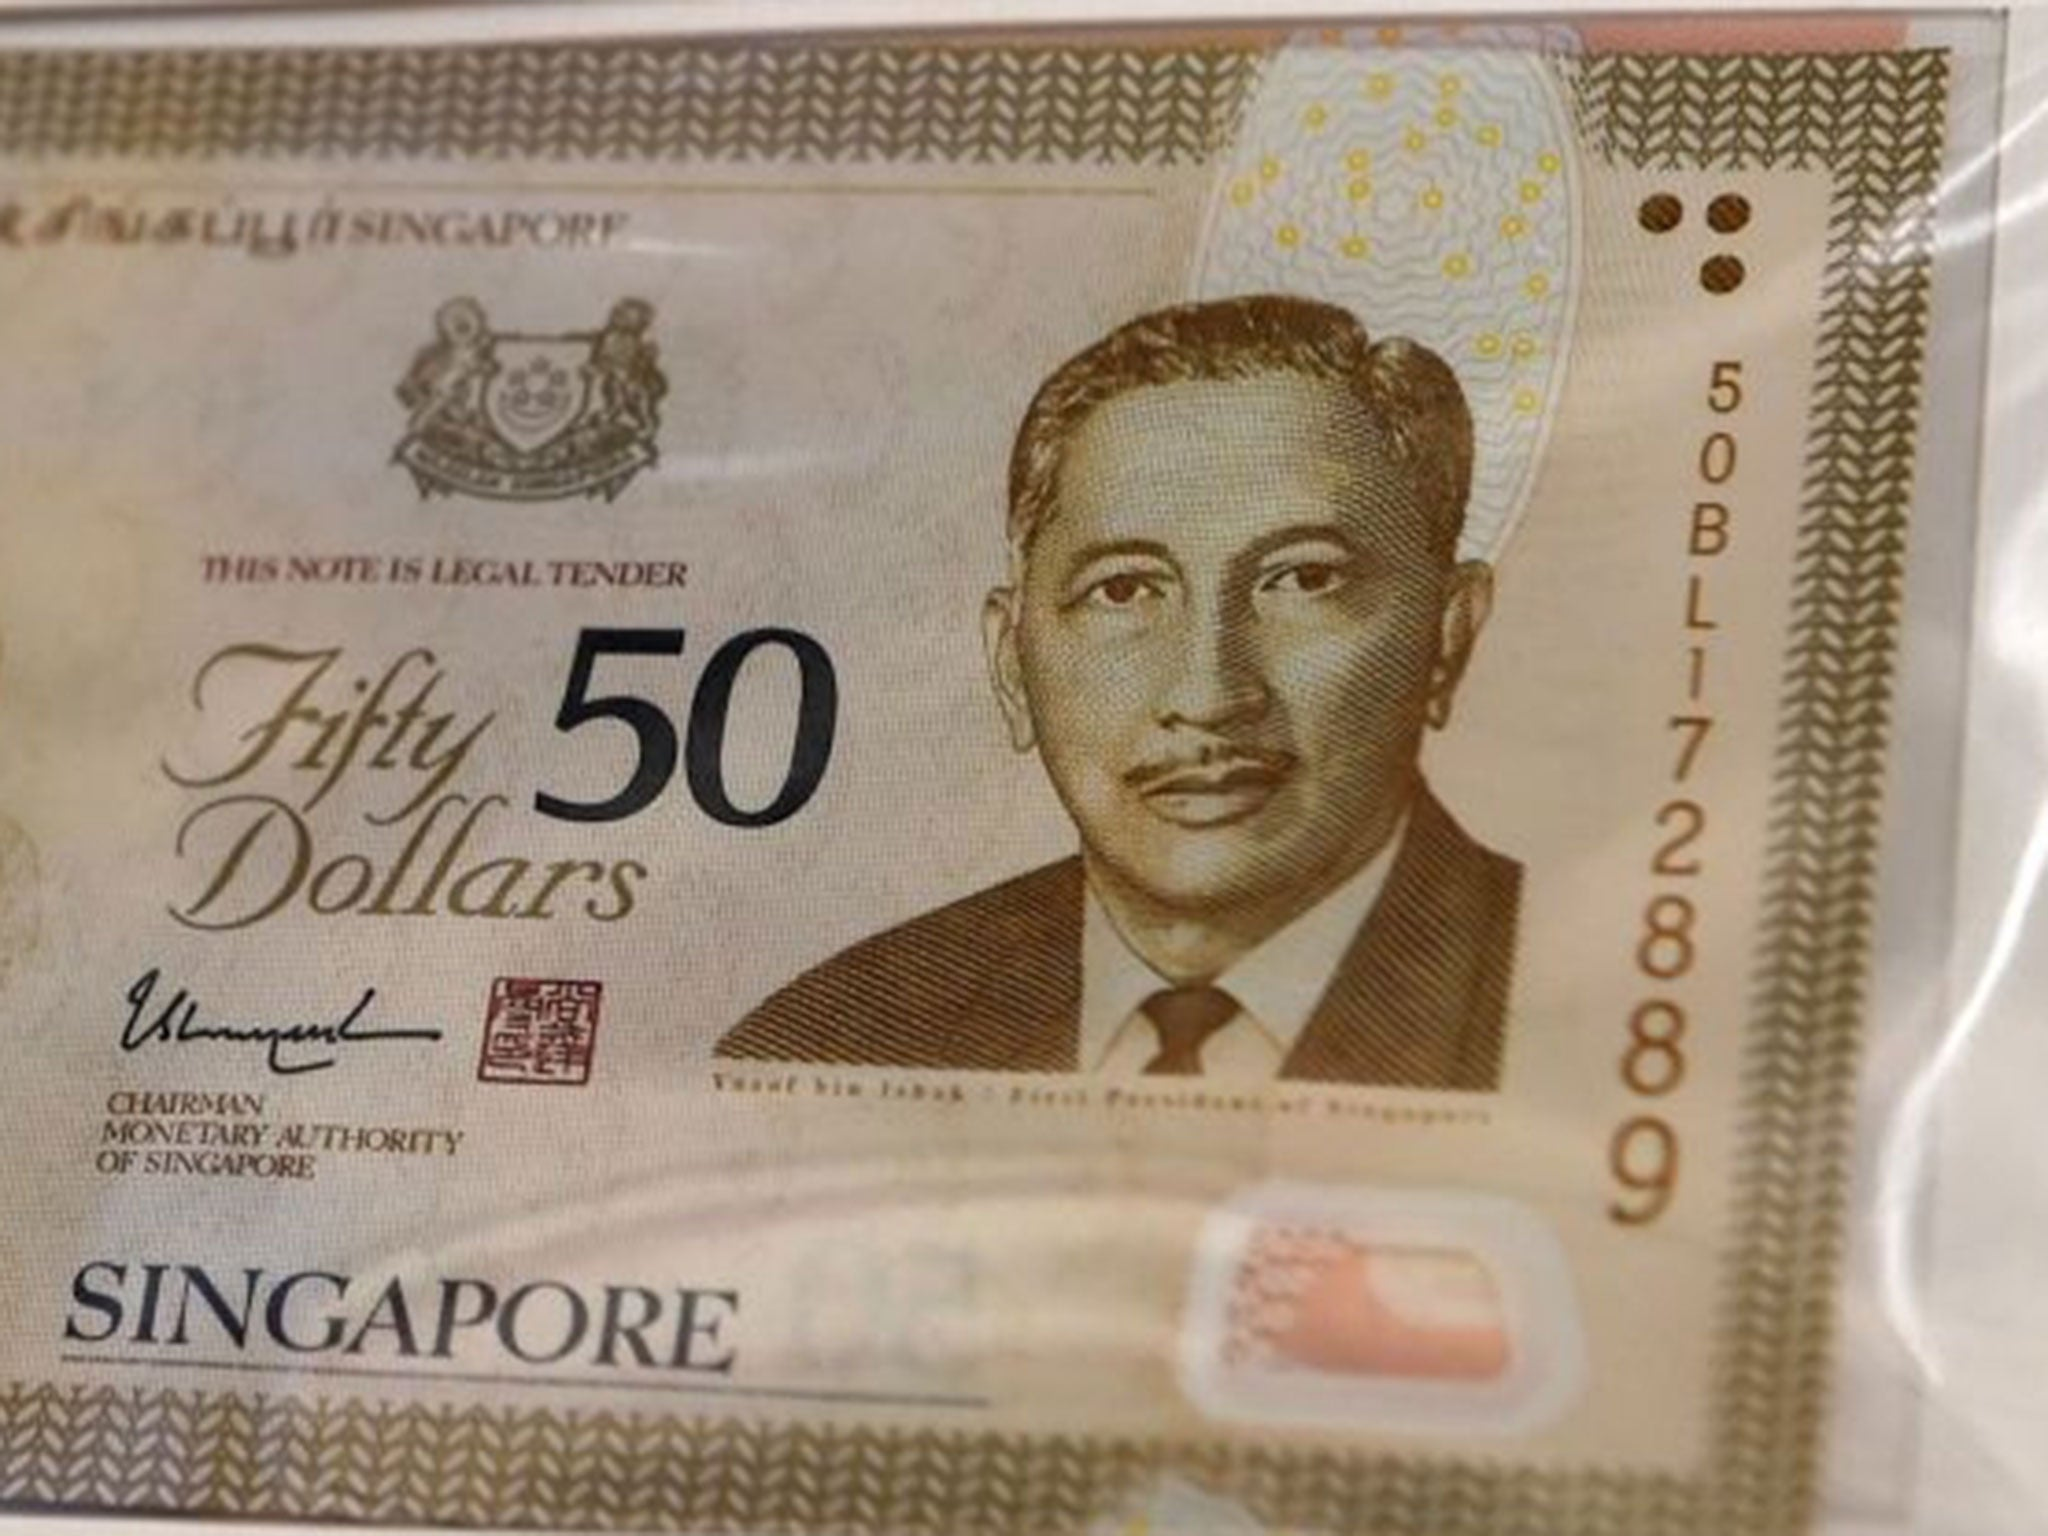 What is the name of singapore currency / T mobile phone top up